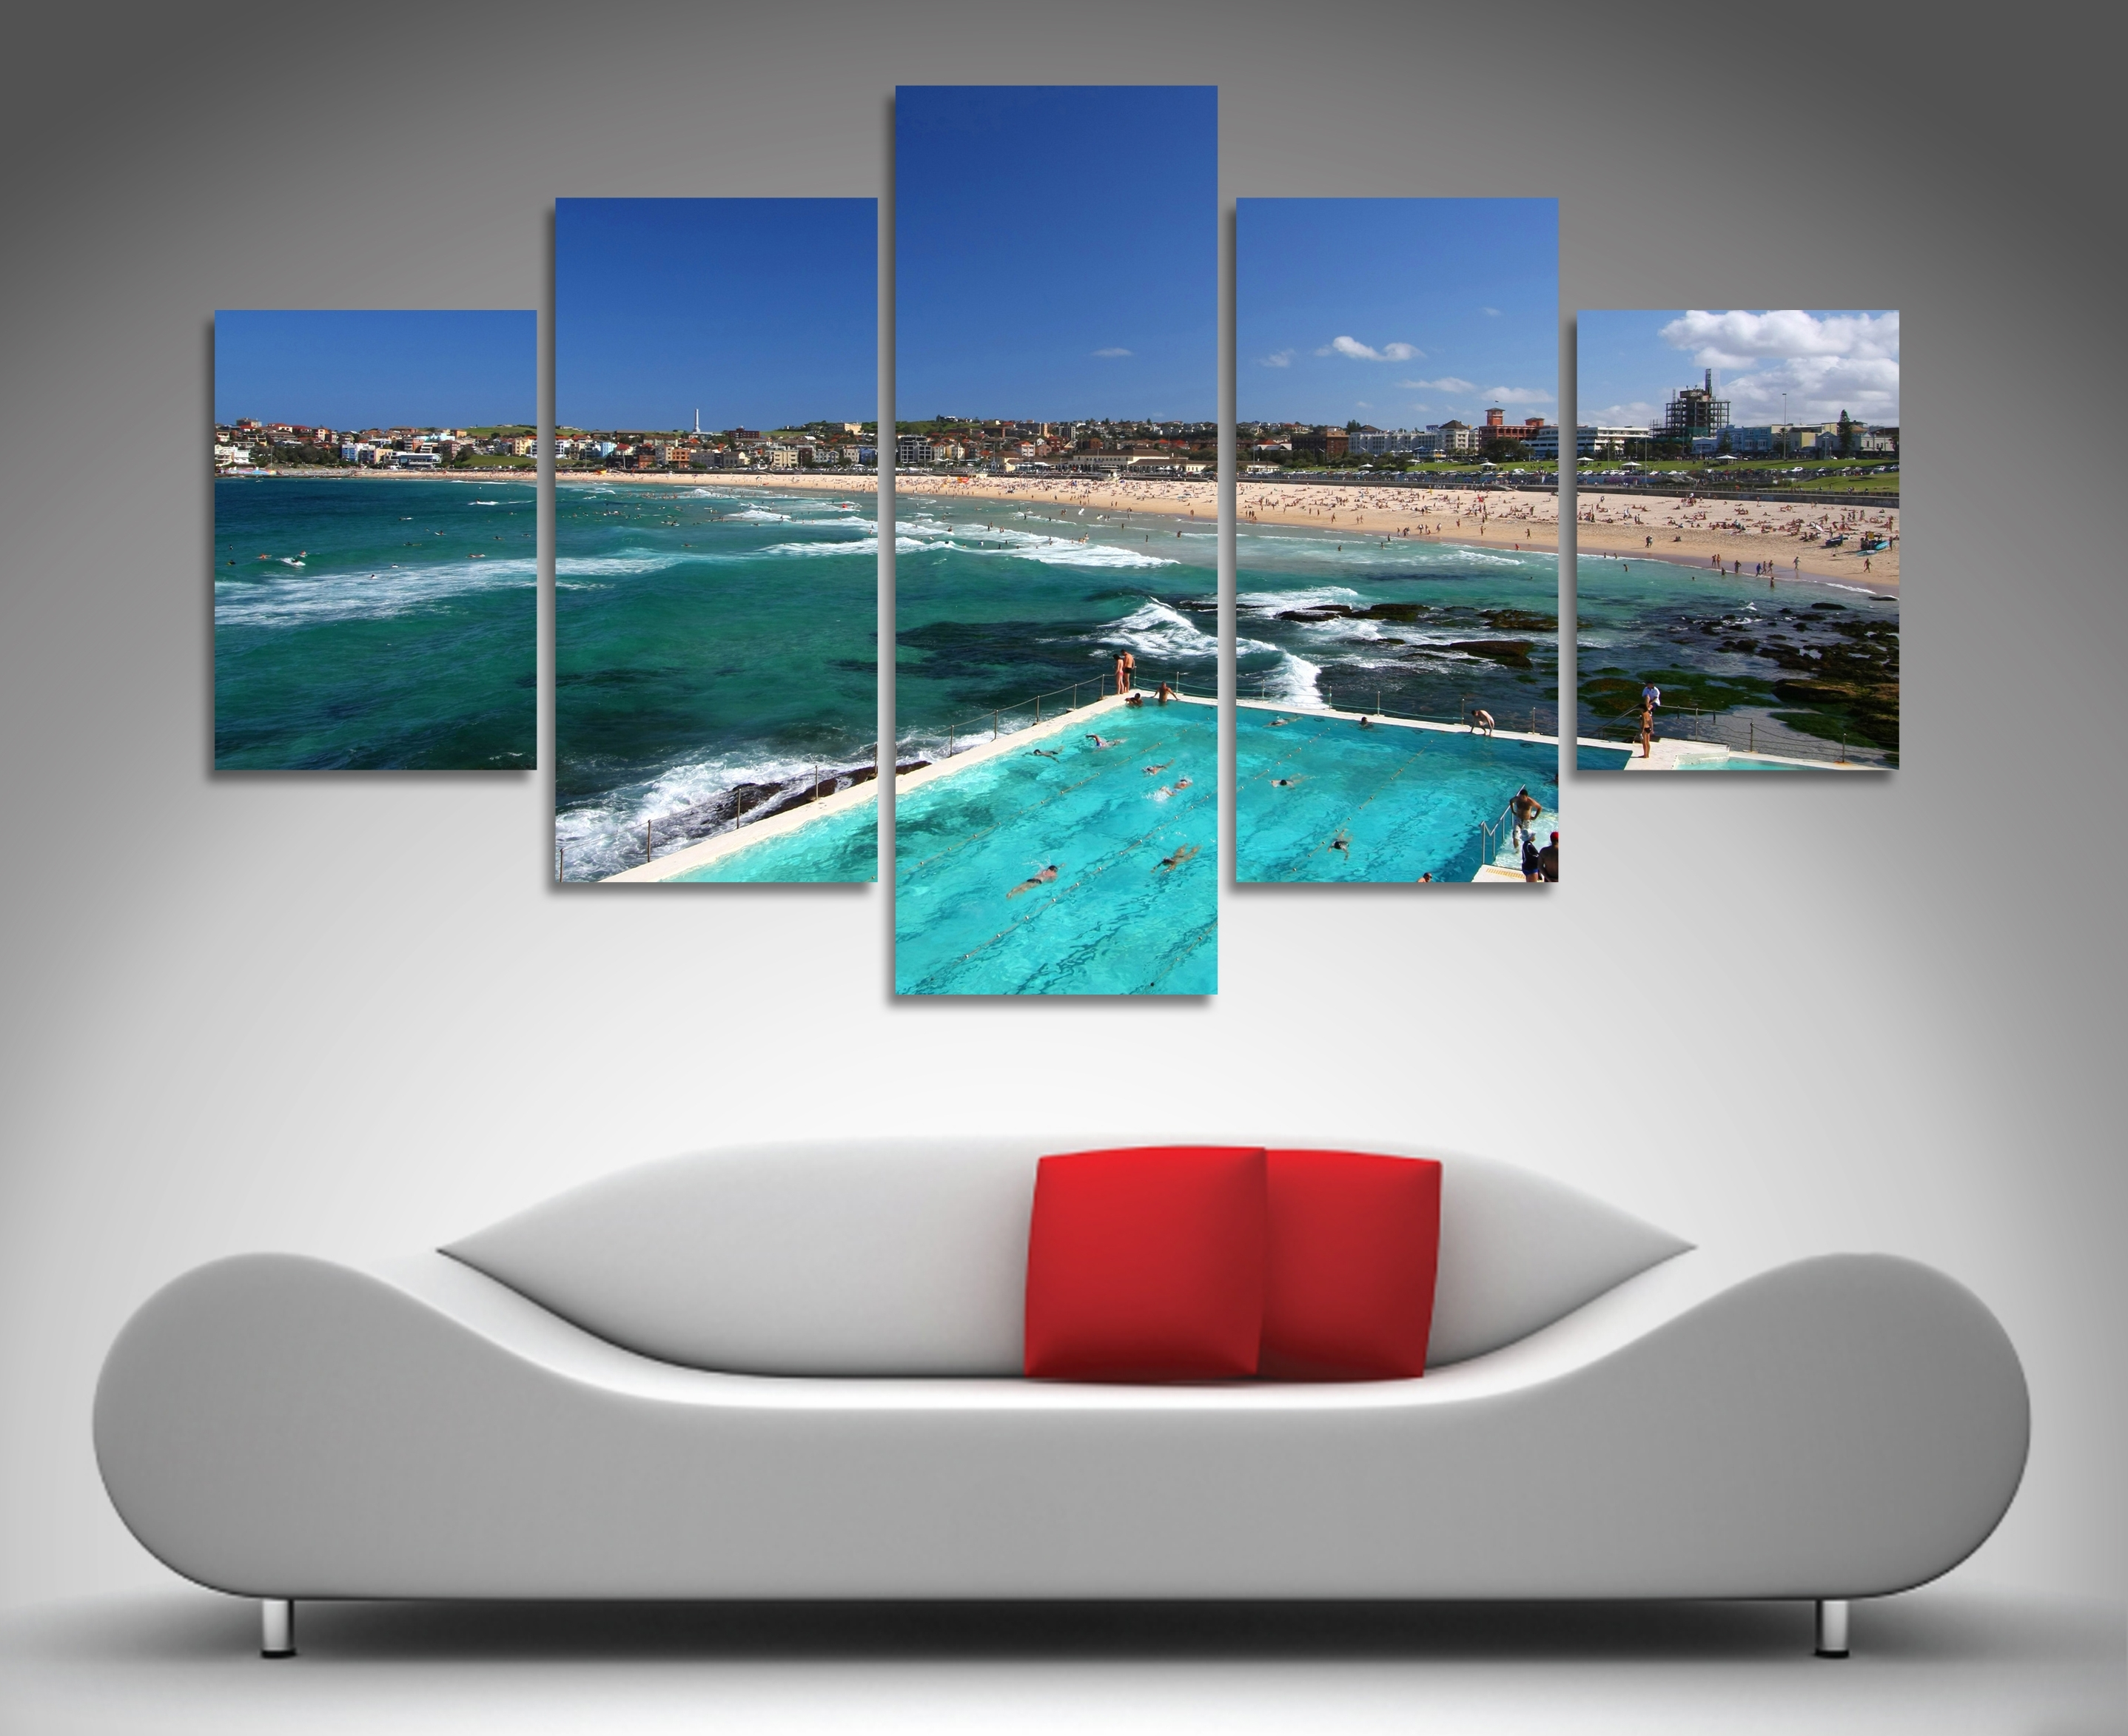 Fashionable Canvas Wall Art In Australia Within Bondi Beach 5 Panel Wall Art (View 8 of 15)